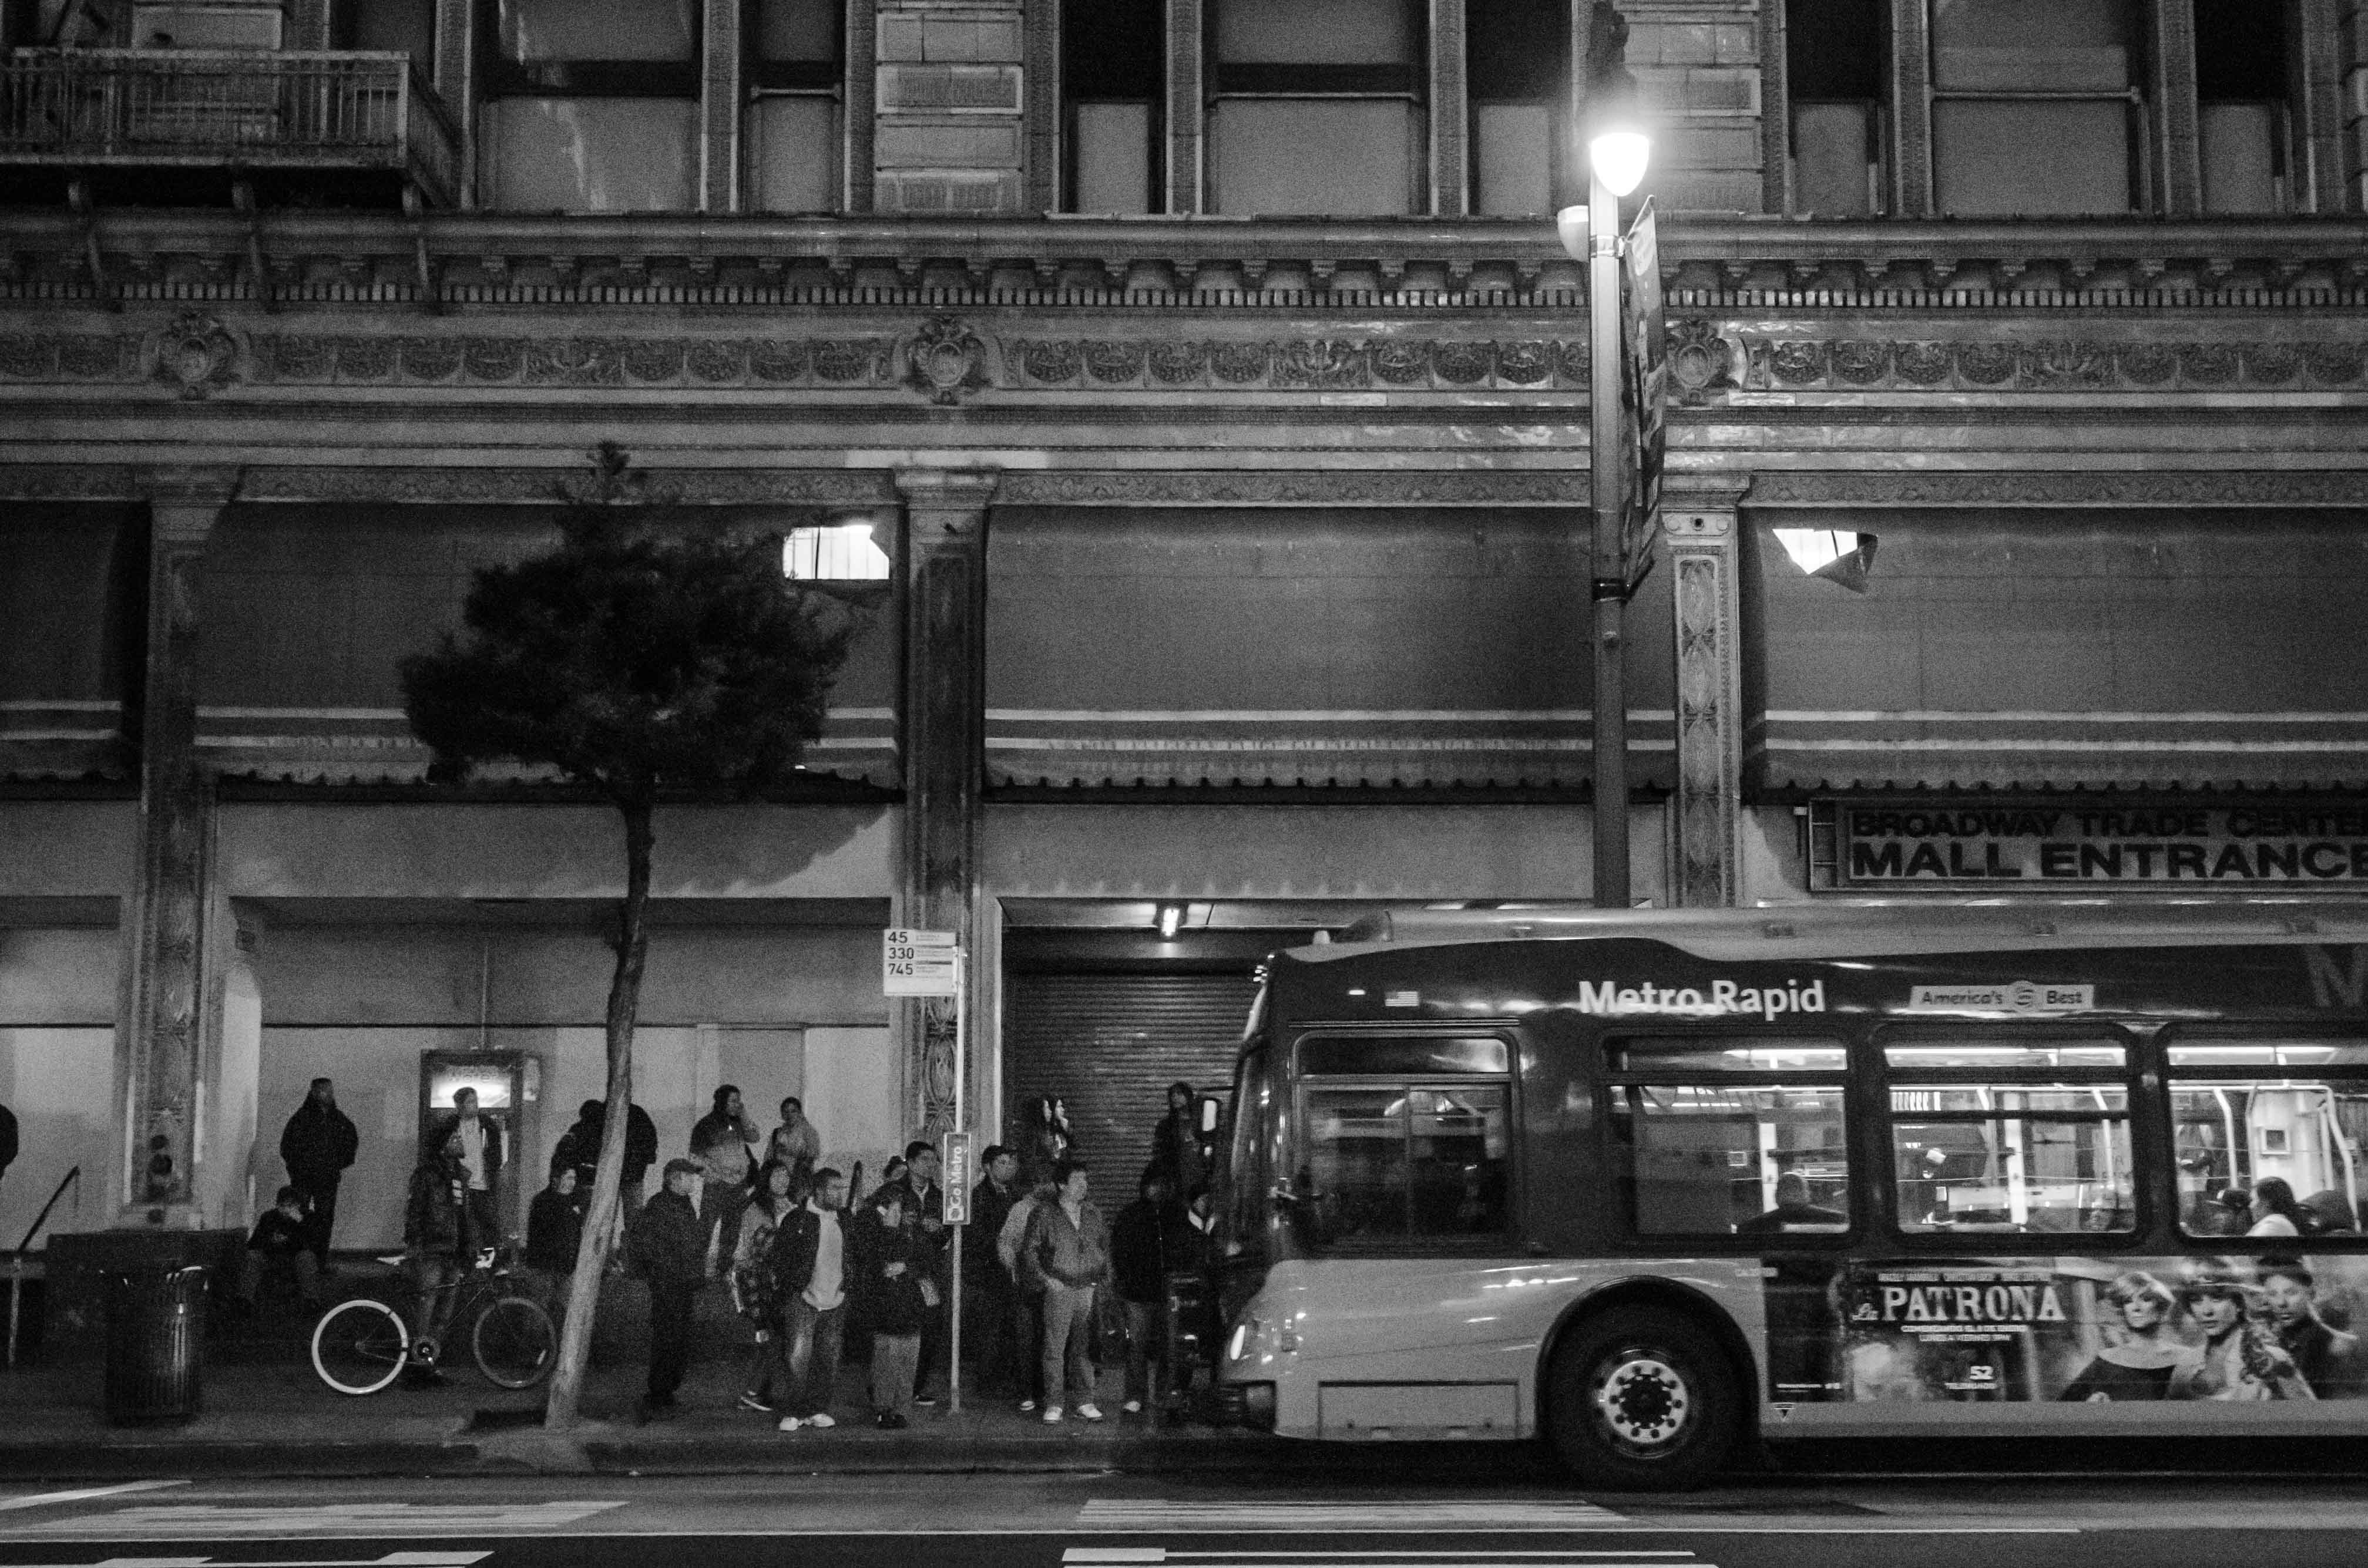 ART OF TRANSIT: A bus on Broadway in downtown Los Angeles. Photo by Steve Hymon/Metro.